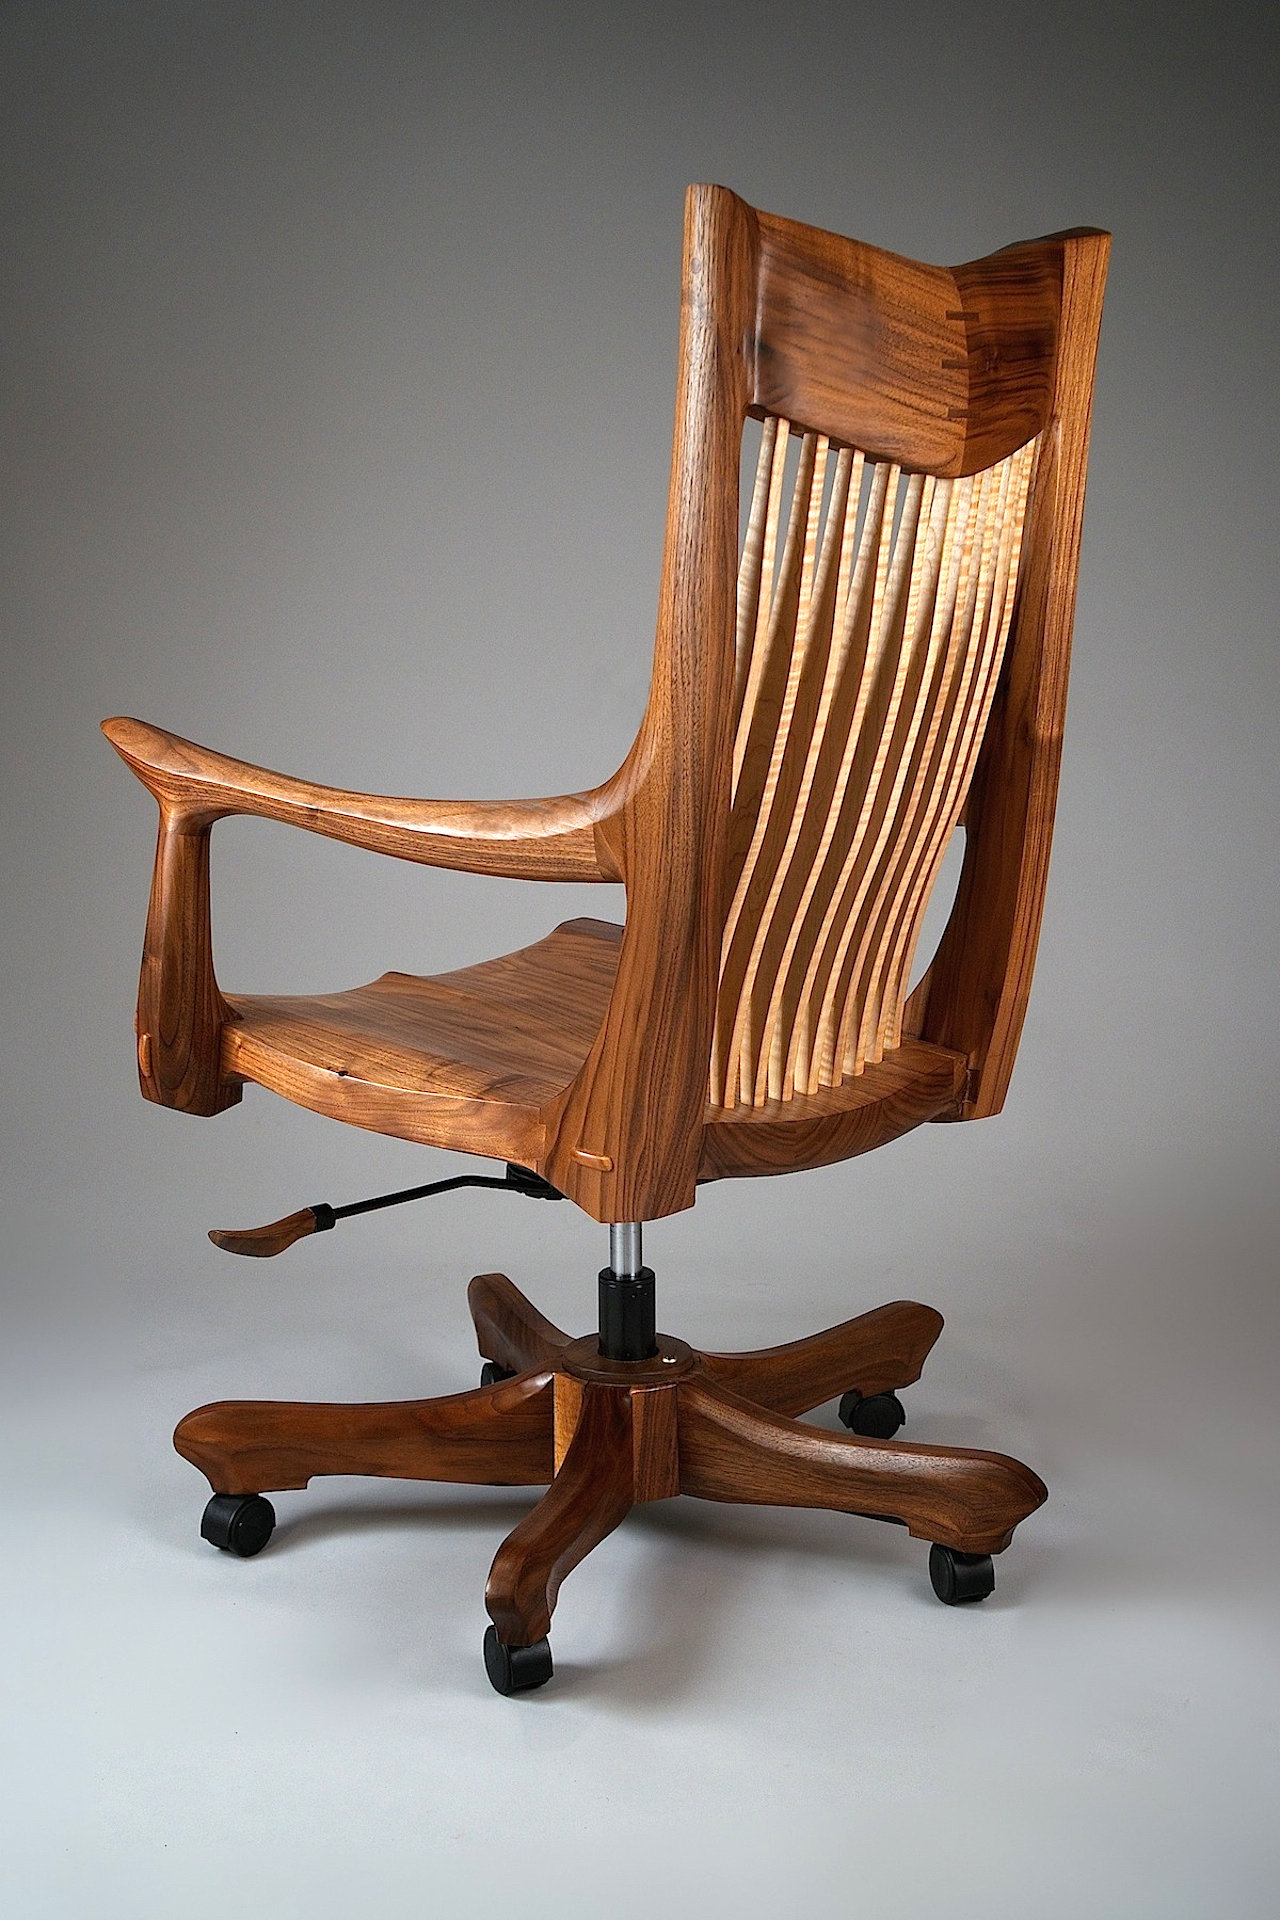 Franklin Swivel Desk Chair by Richard Laufer Wood Chair